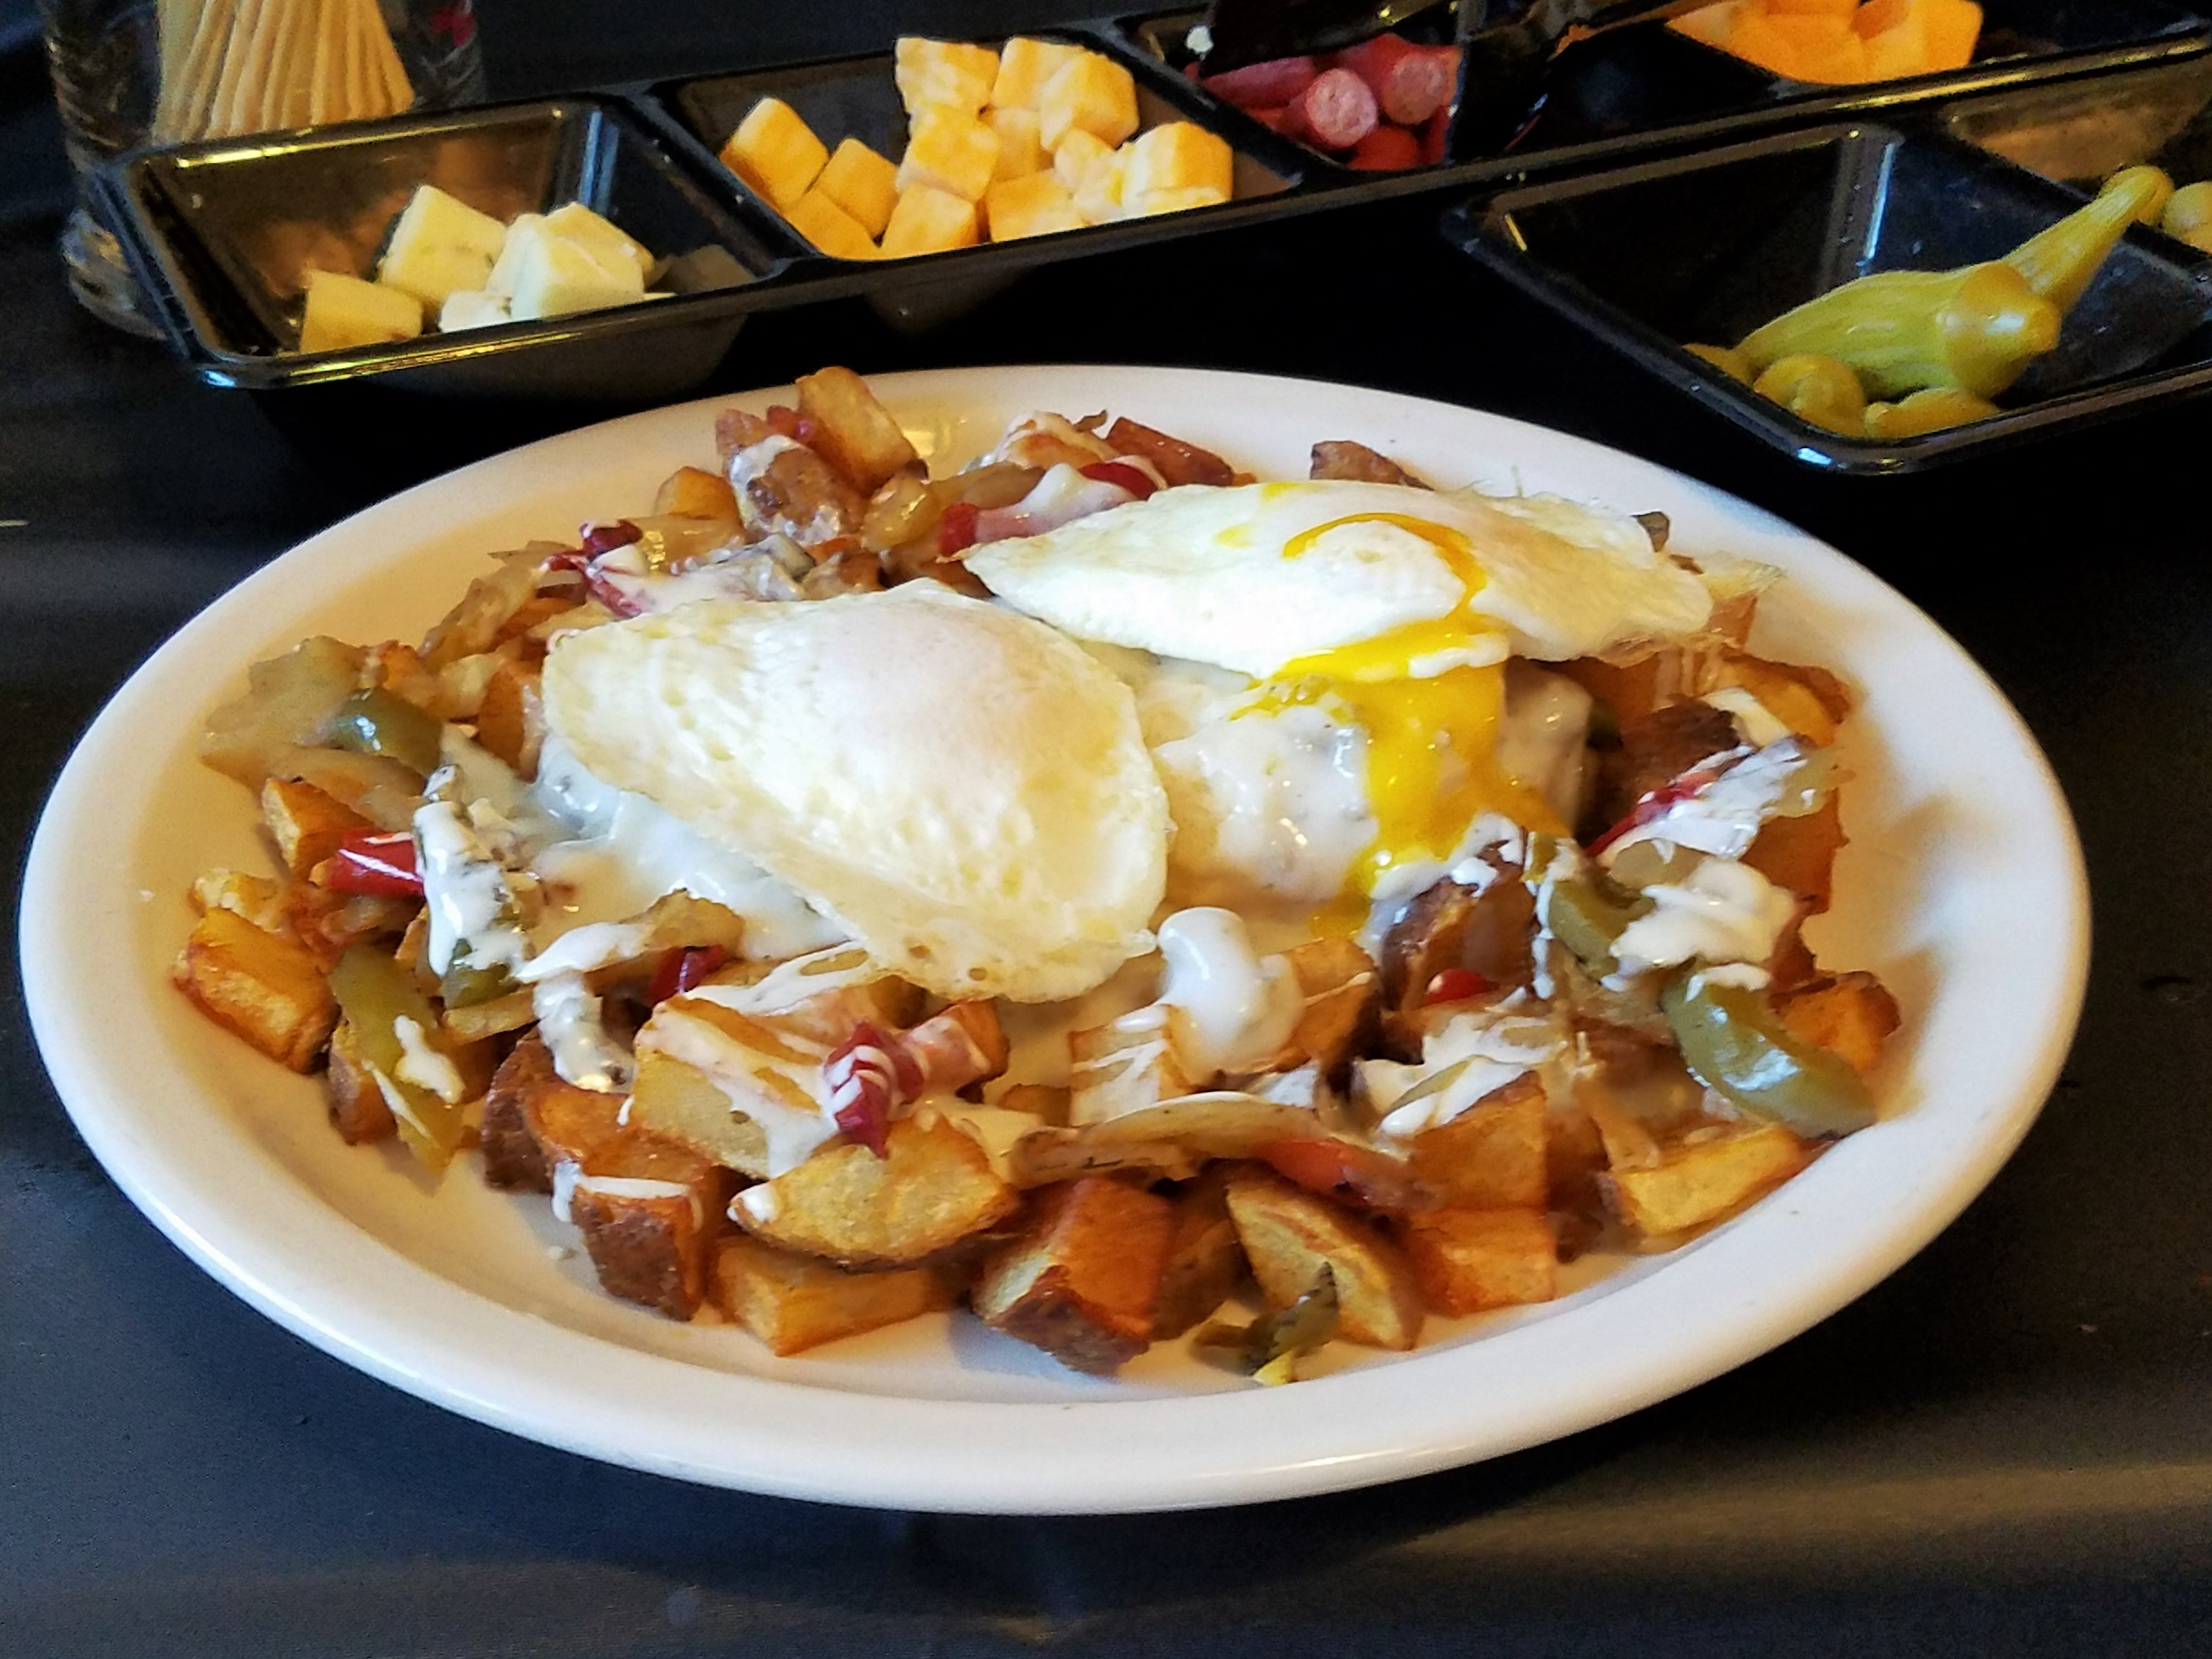 The Big Al plate at Hawg N Sauce Saturday brunch: home fries with peppers, queso, biscuits with gravy and two eggs your way.